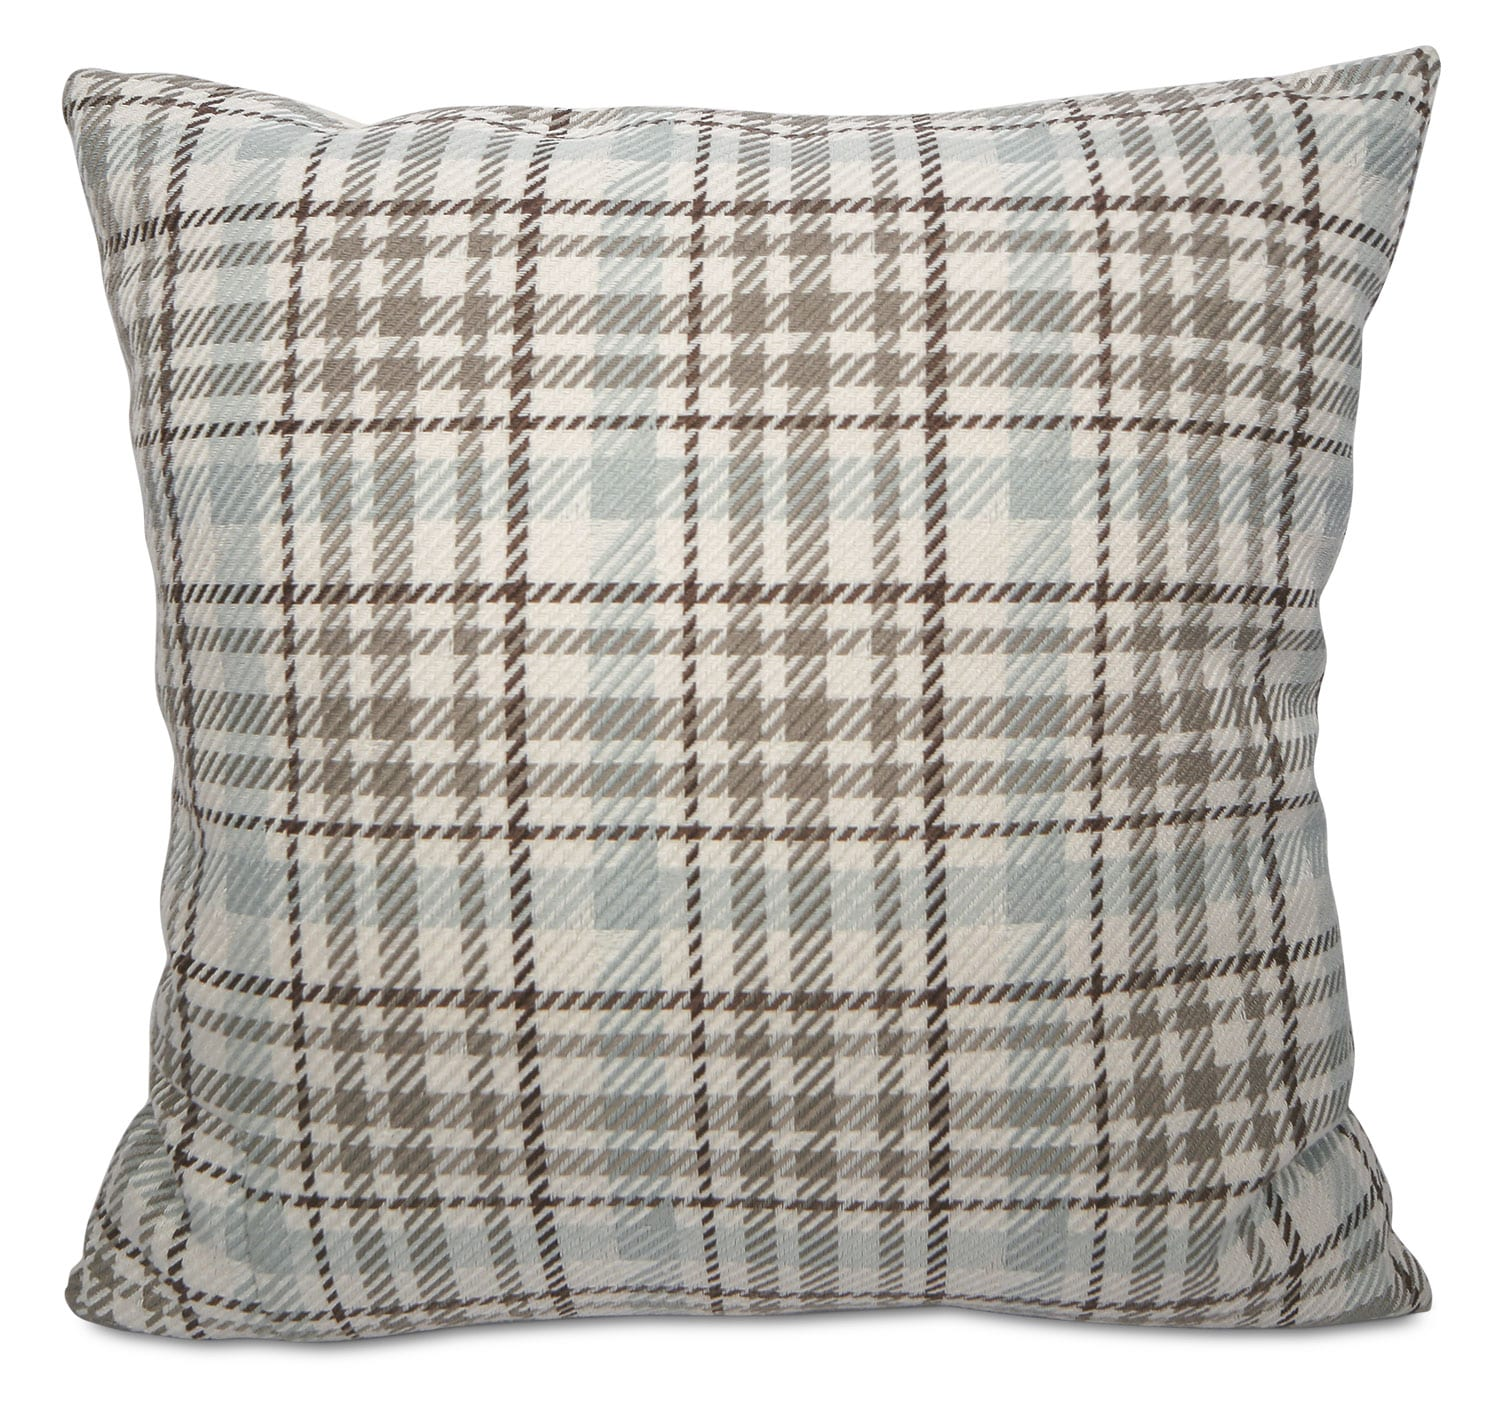 Kirk Accent Pillow – Blue, Taupe and Ivory